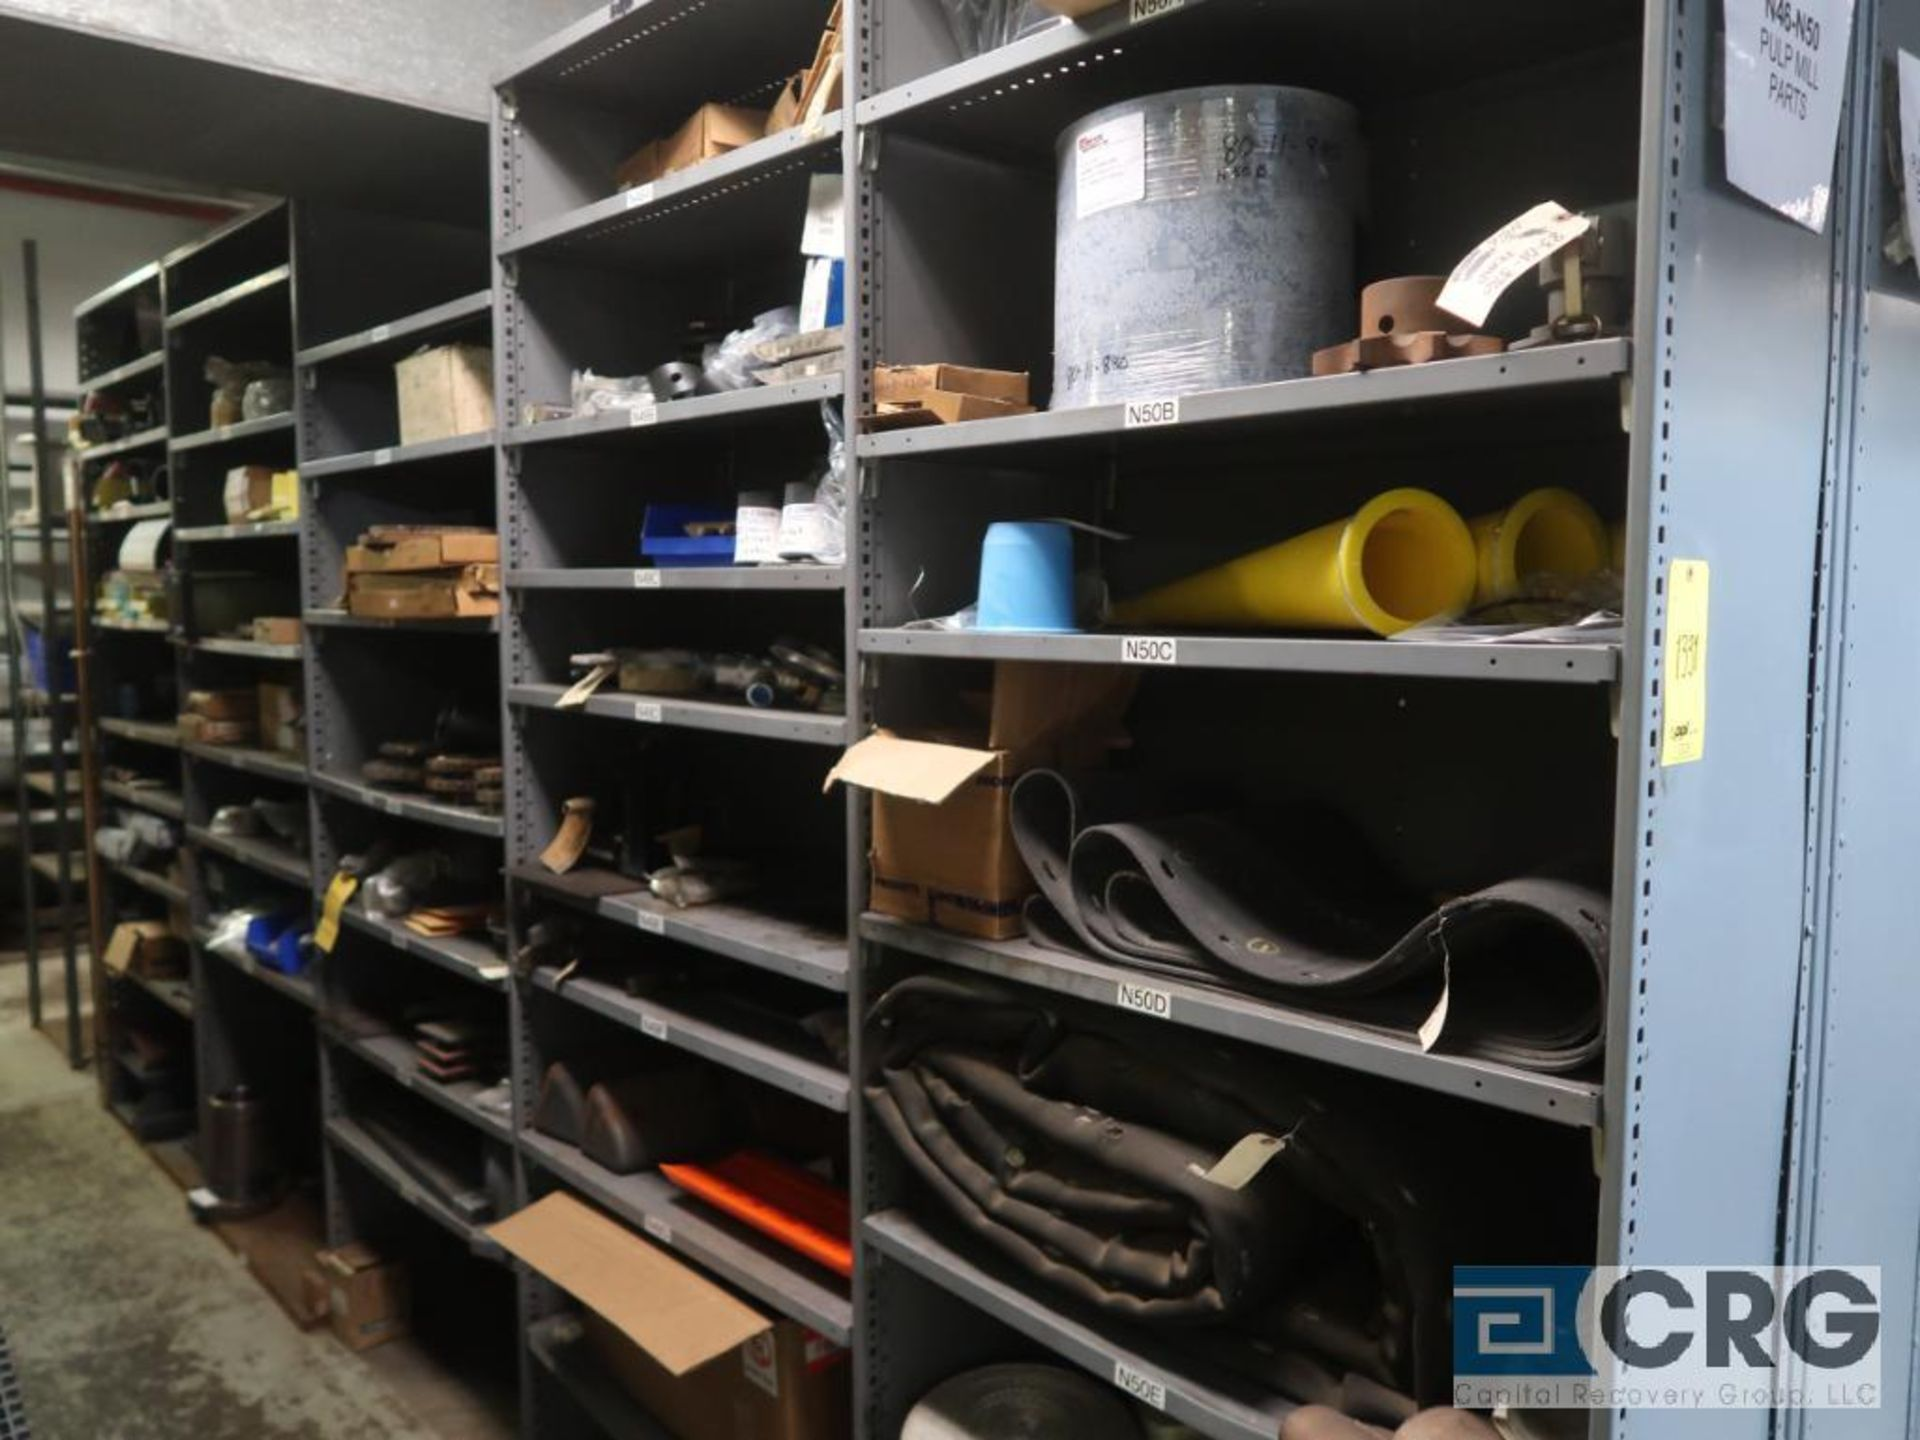 Lot of (35) sections with assorted parts including gaskets, fittings, shaft pins, gears, and - Image 3 of 17